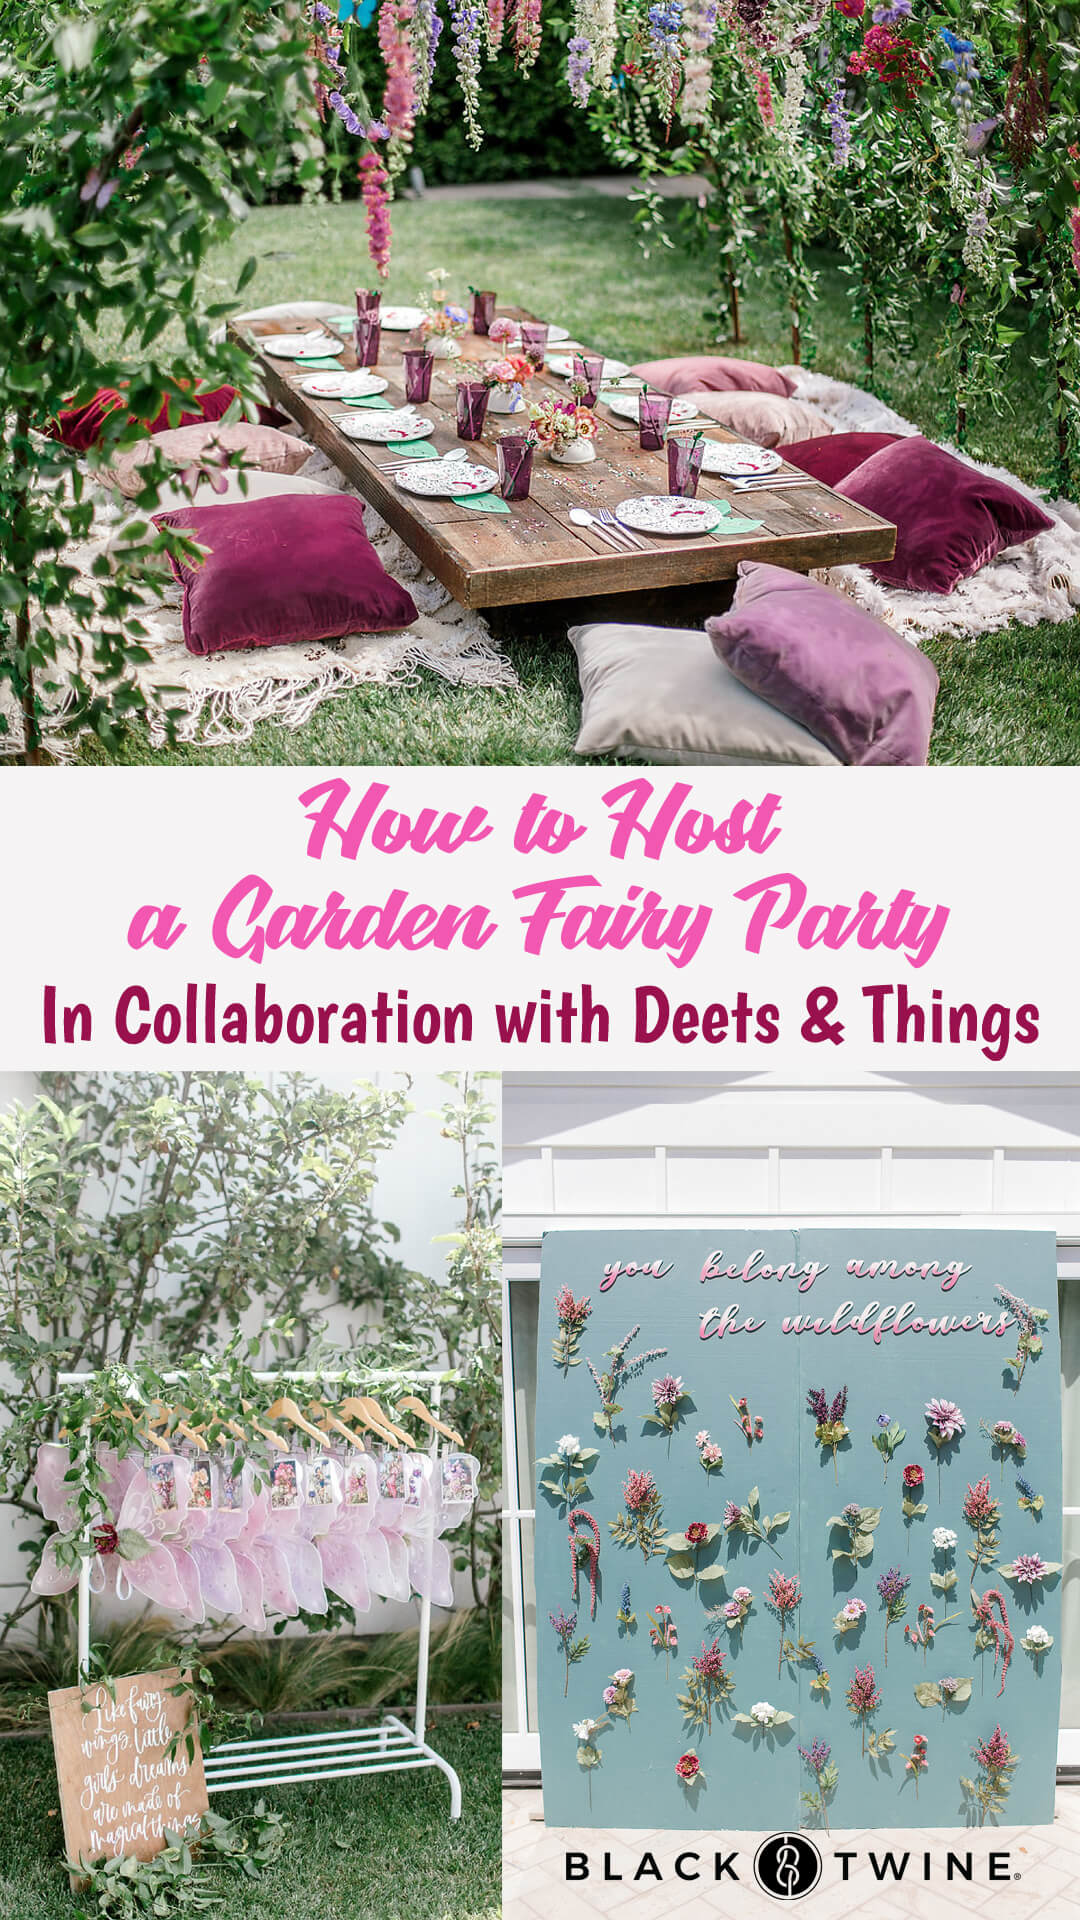 Tablescape, Place Setting, Floral Backdrop, Floral Arch from Garden Fairy Party In Collaboration with Deets & Things | Black Twine